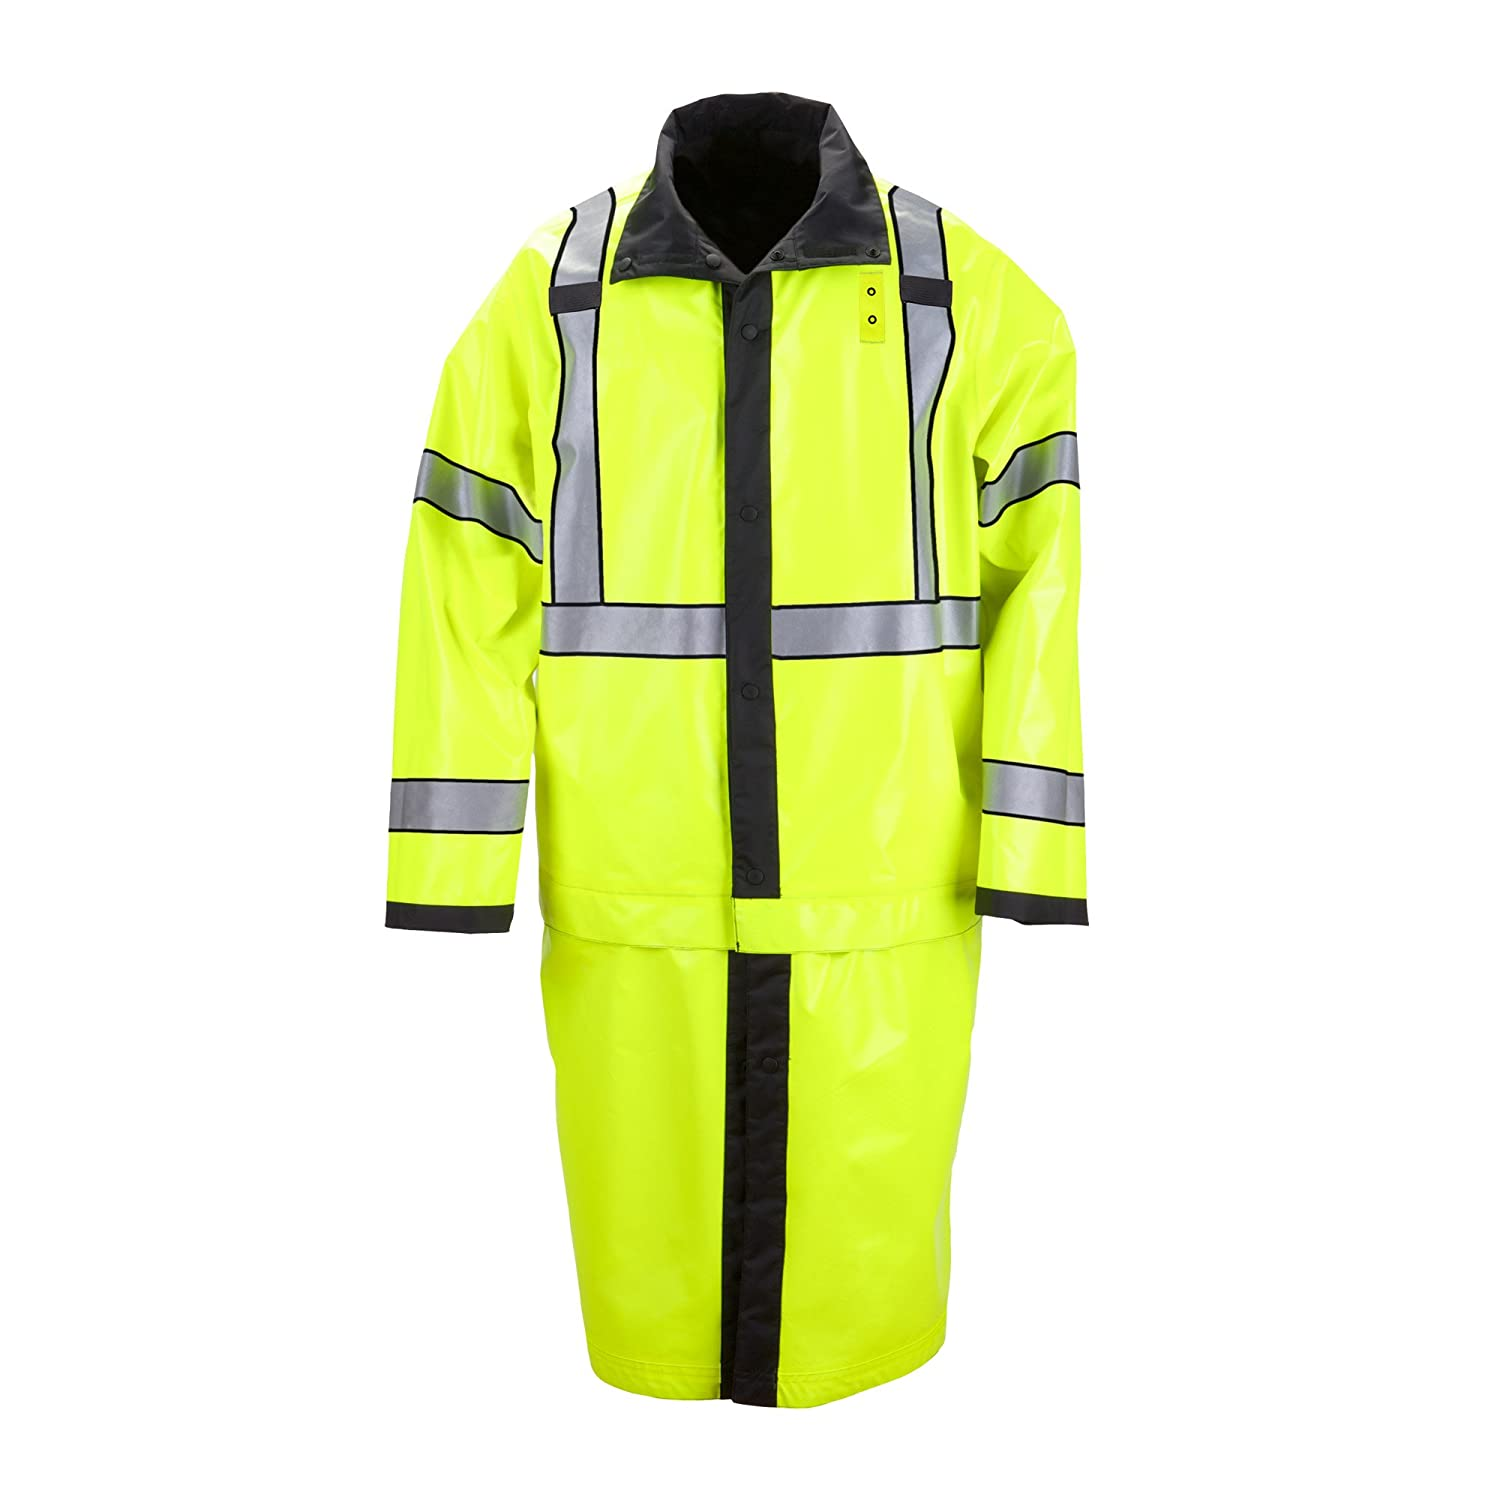 5.11 Men's Long Reversible Ansi Class 3 High Visibility Rain Coat A.C. Kerman - LE